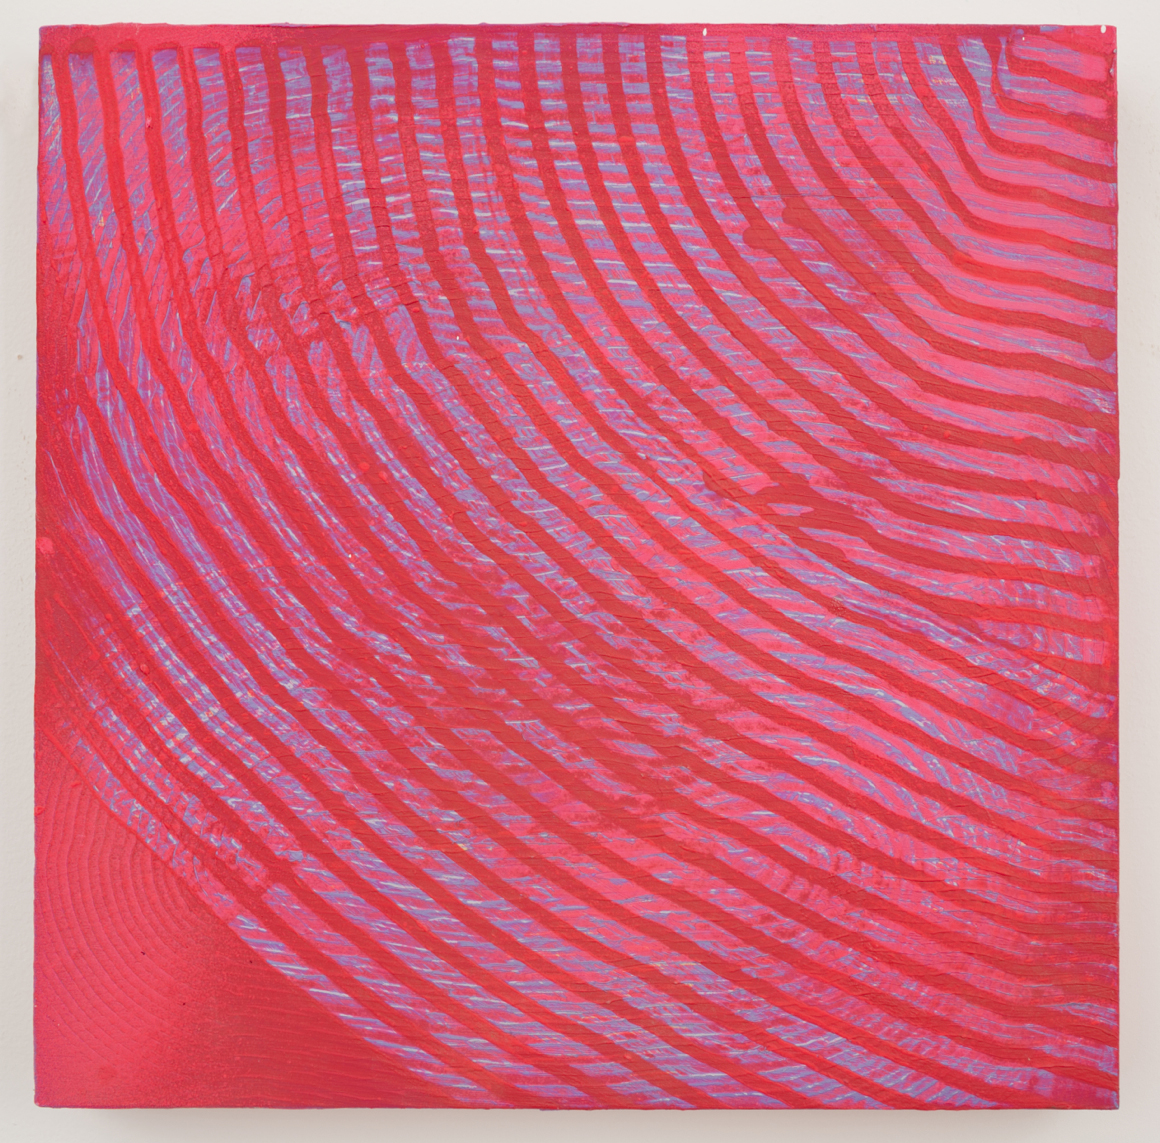 "<p><span class=""name"">Adam Bateman</span><br><em>Pink</em><span class='media'>acrylic and spray paint on panel</span>13 x 13in<br>2014<br></p>"